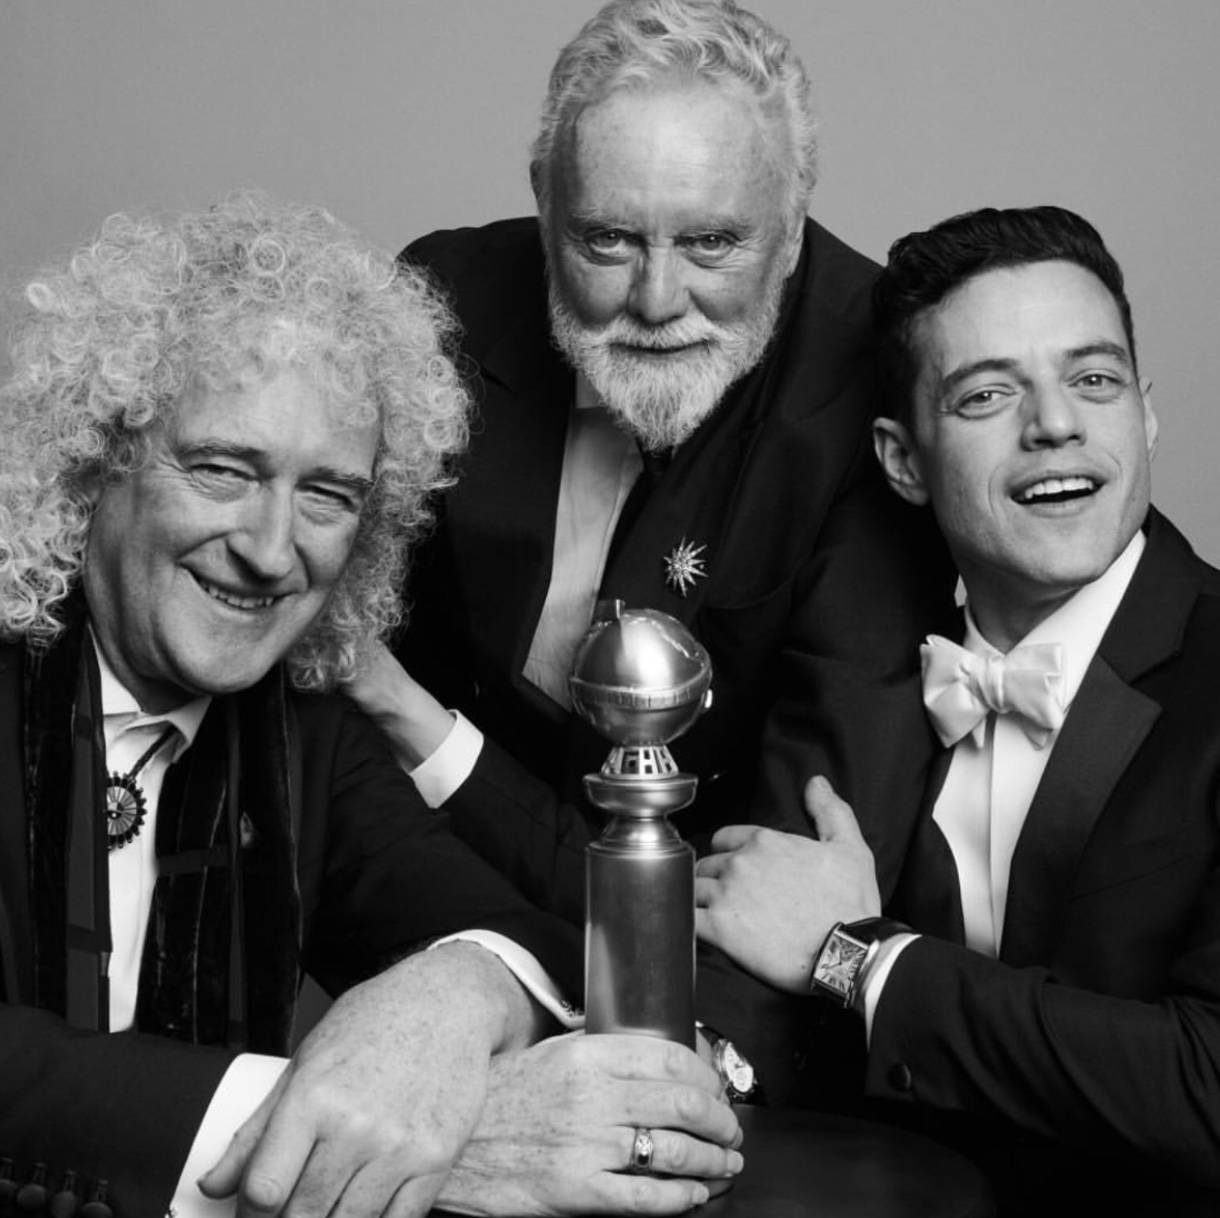 Official picture taken from the Golden Globes of Queen members Brian May (left) and Roger Taylor (middle) with the star of Bohemian Rhapsody Rami Malek (right) celebrating the film's win.  Fair use: Instagram